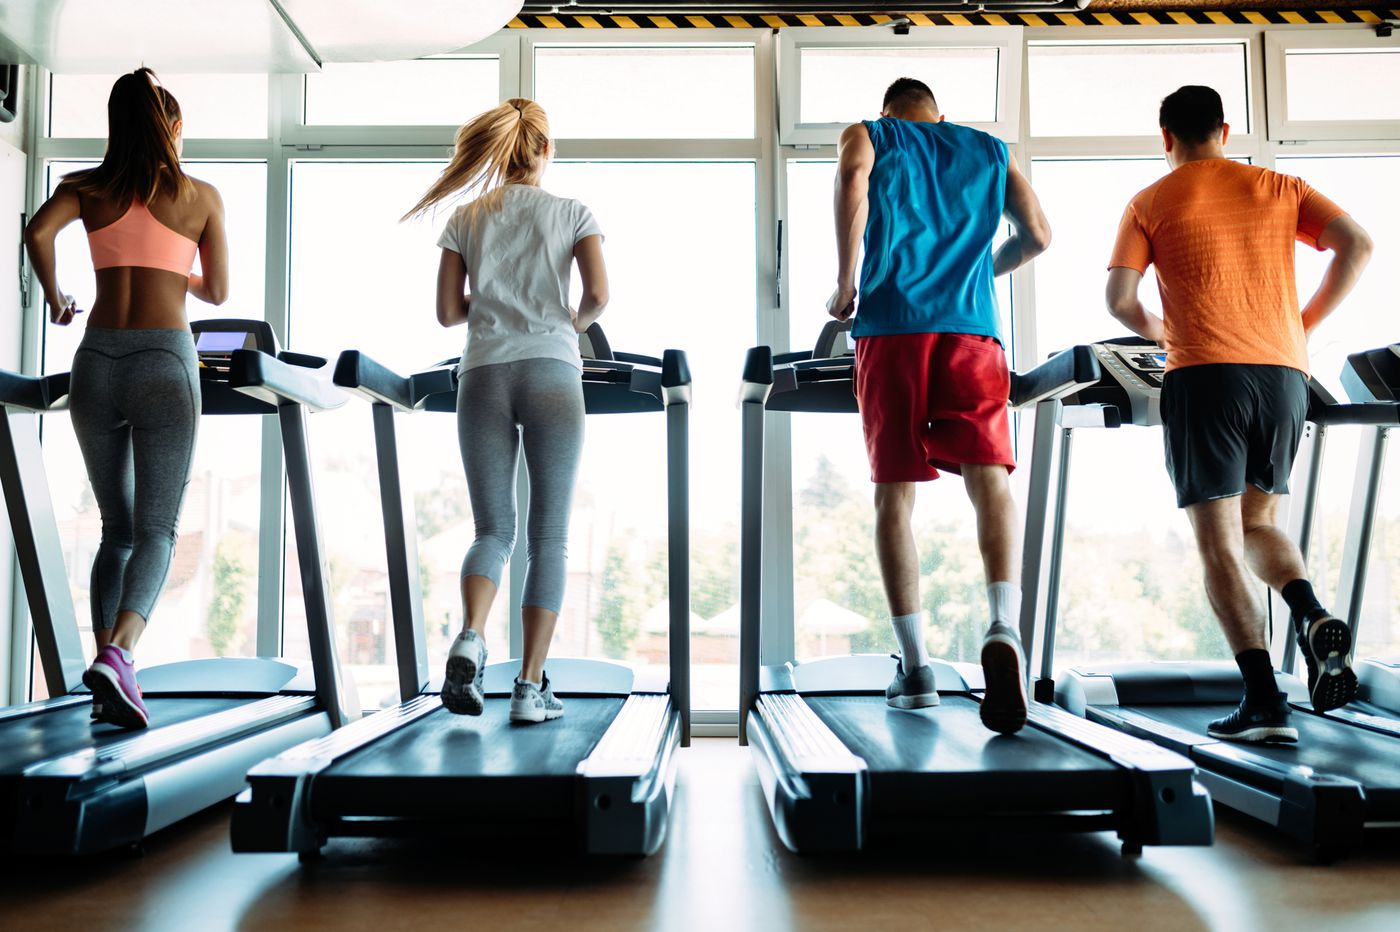 4 tips for safely using a treadmill